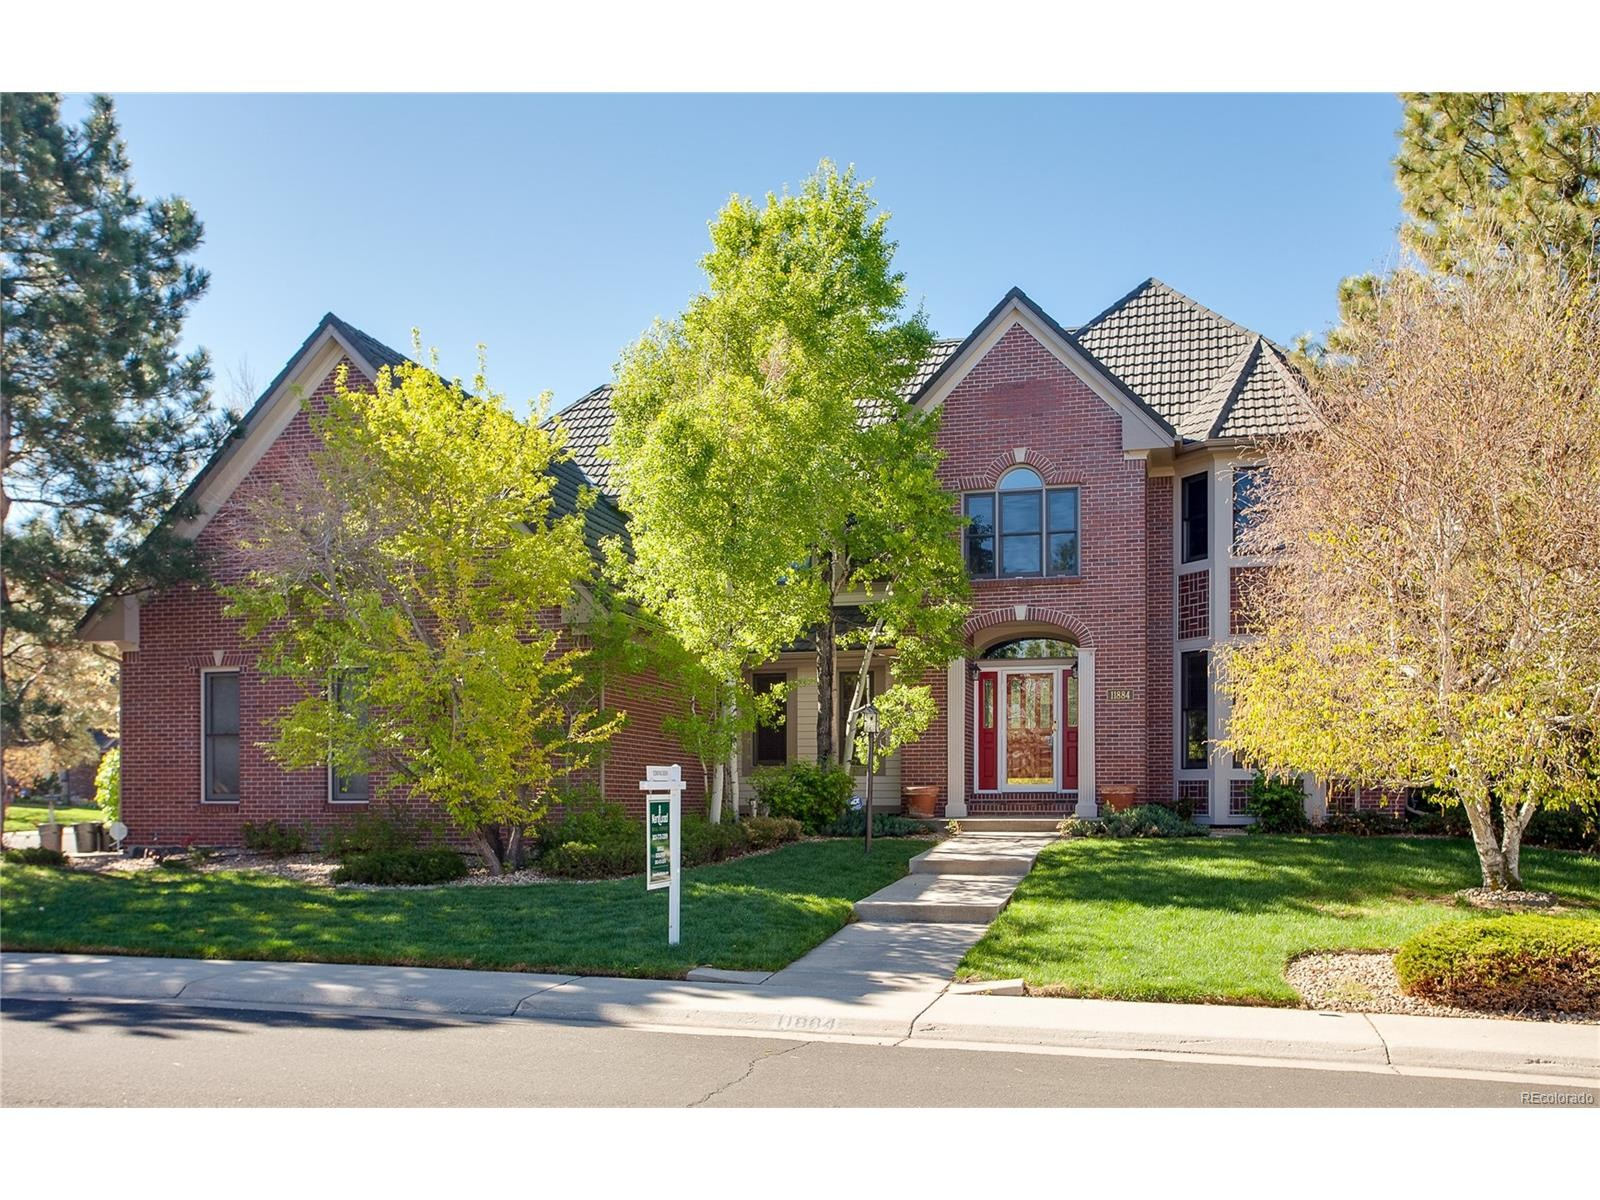 Sold! Beautiful Brick Home in Englewood